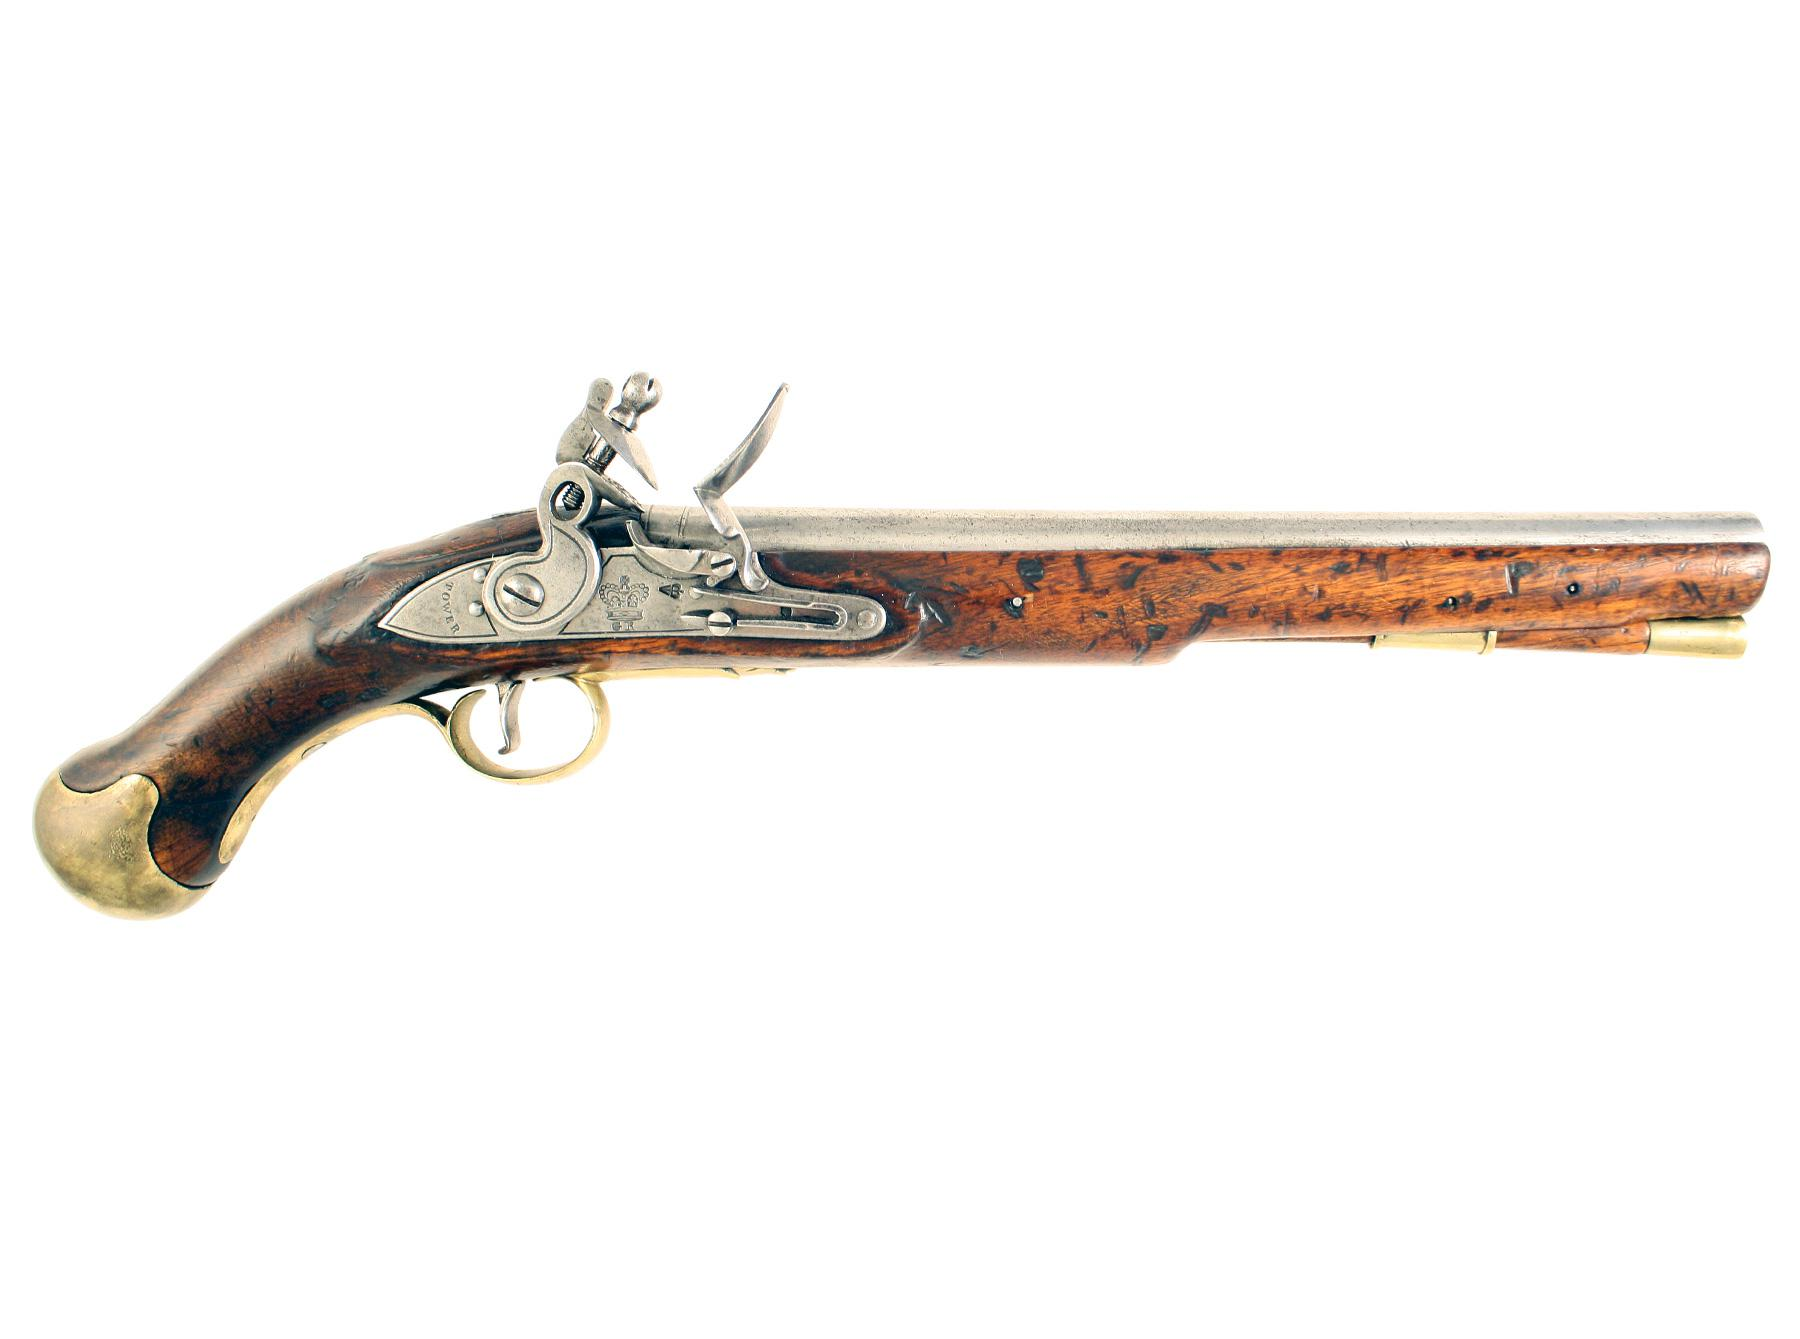 A Flintlock Long Sea Service Pistol